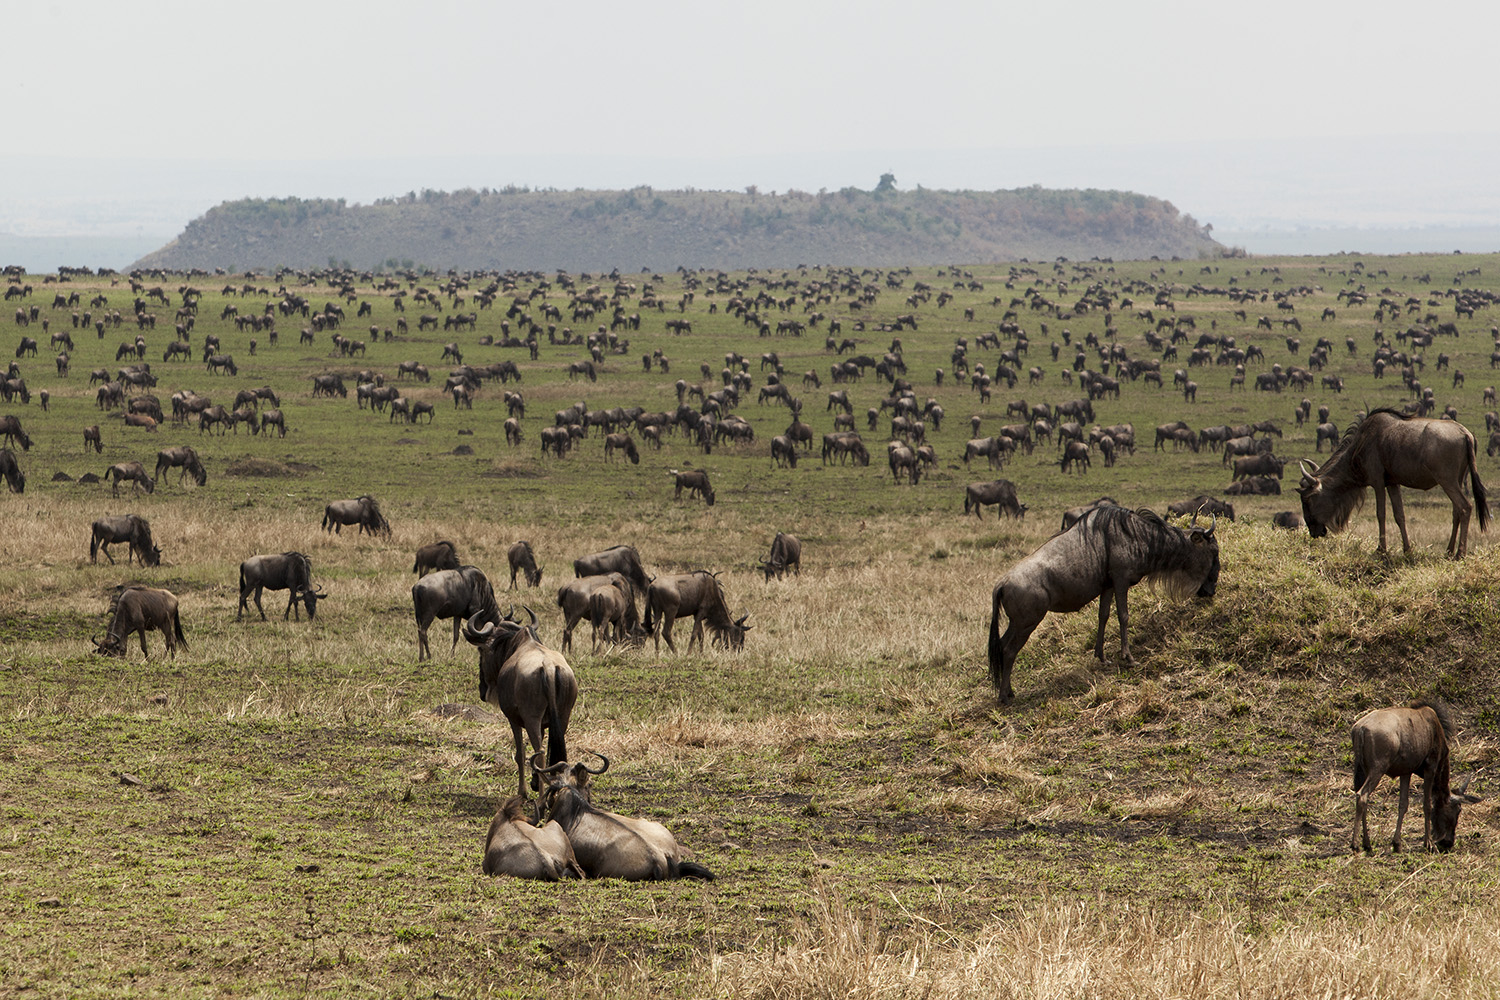 Wildebeest in burnt area